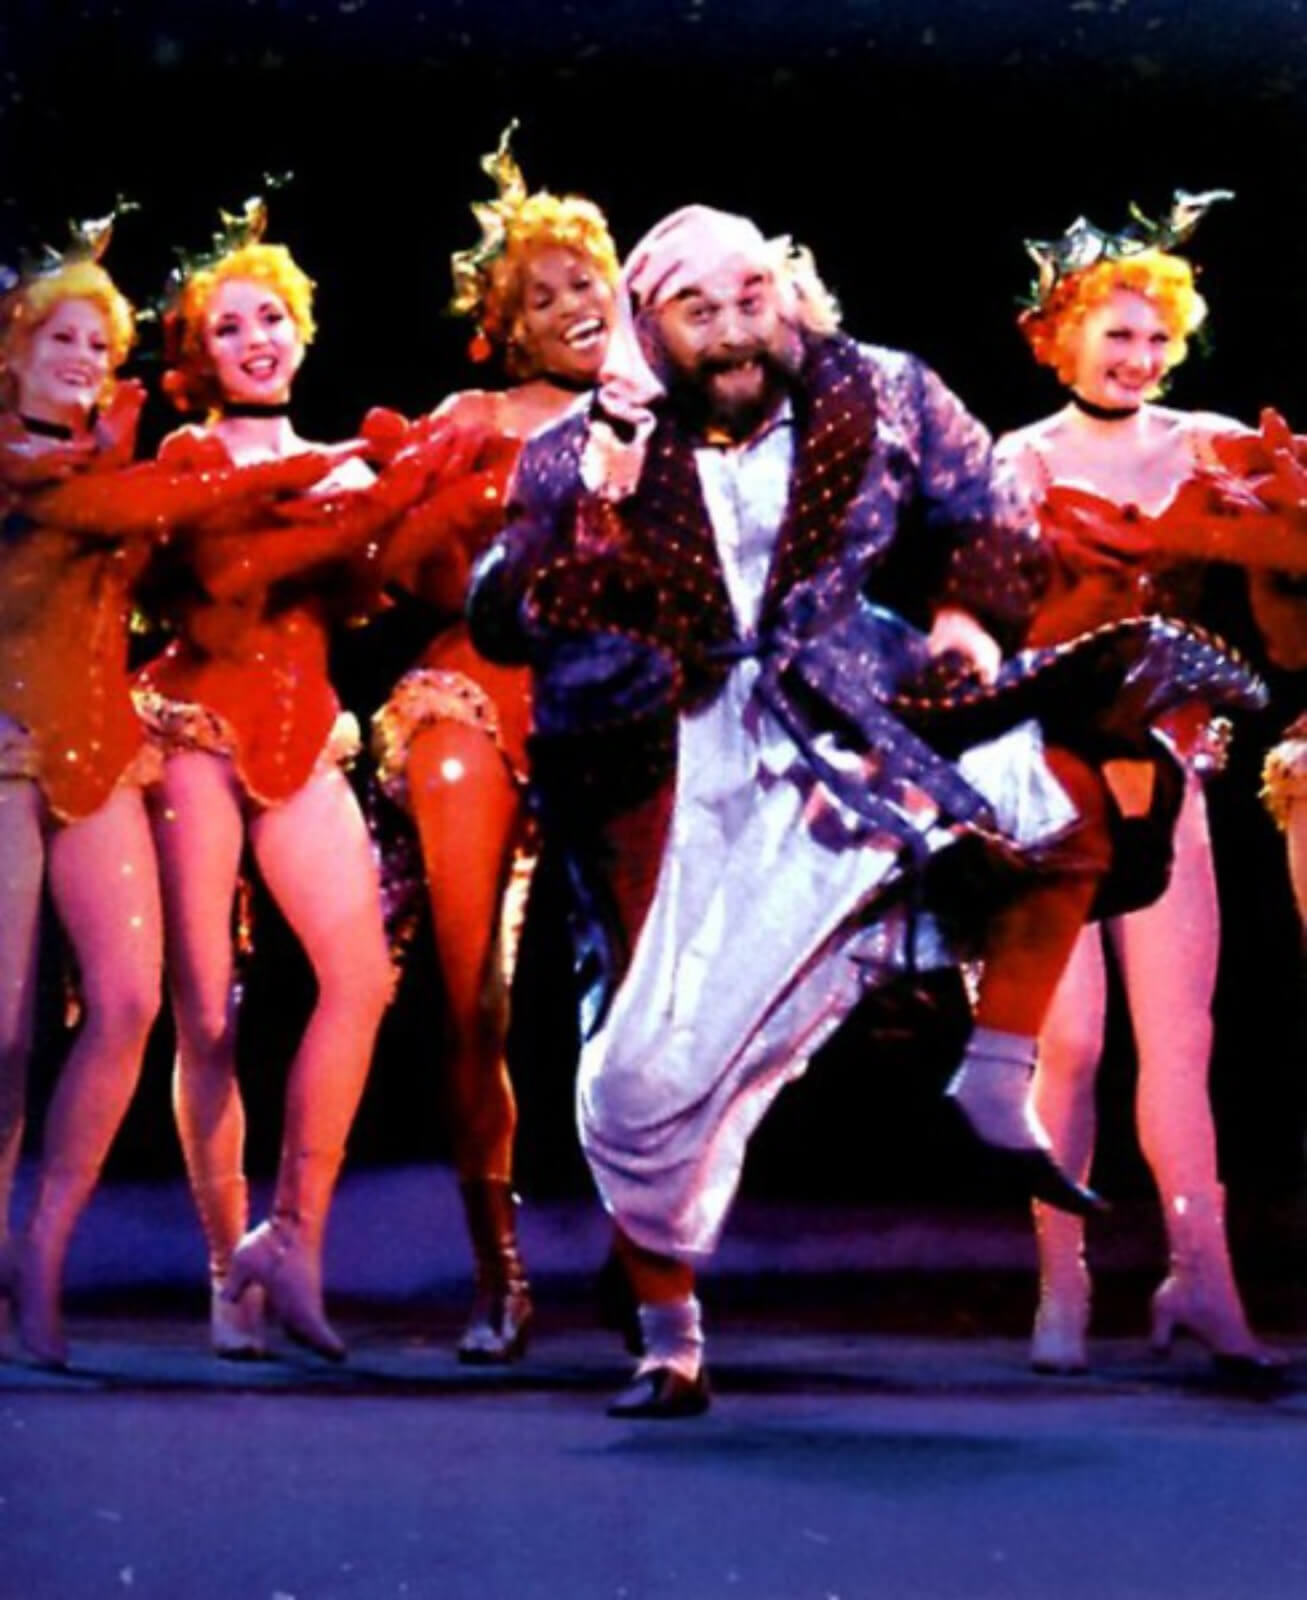 Scrooge (Walter Charles) in a robe happily dancing as he is surrounded by Holly Girls in bright red costumes